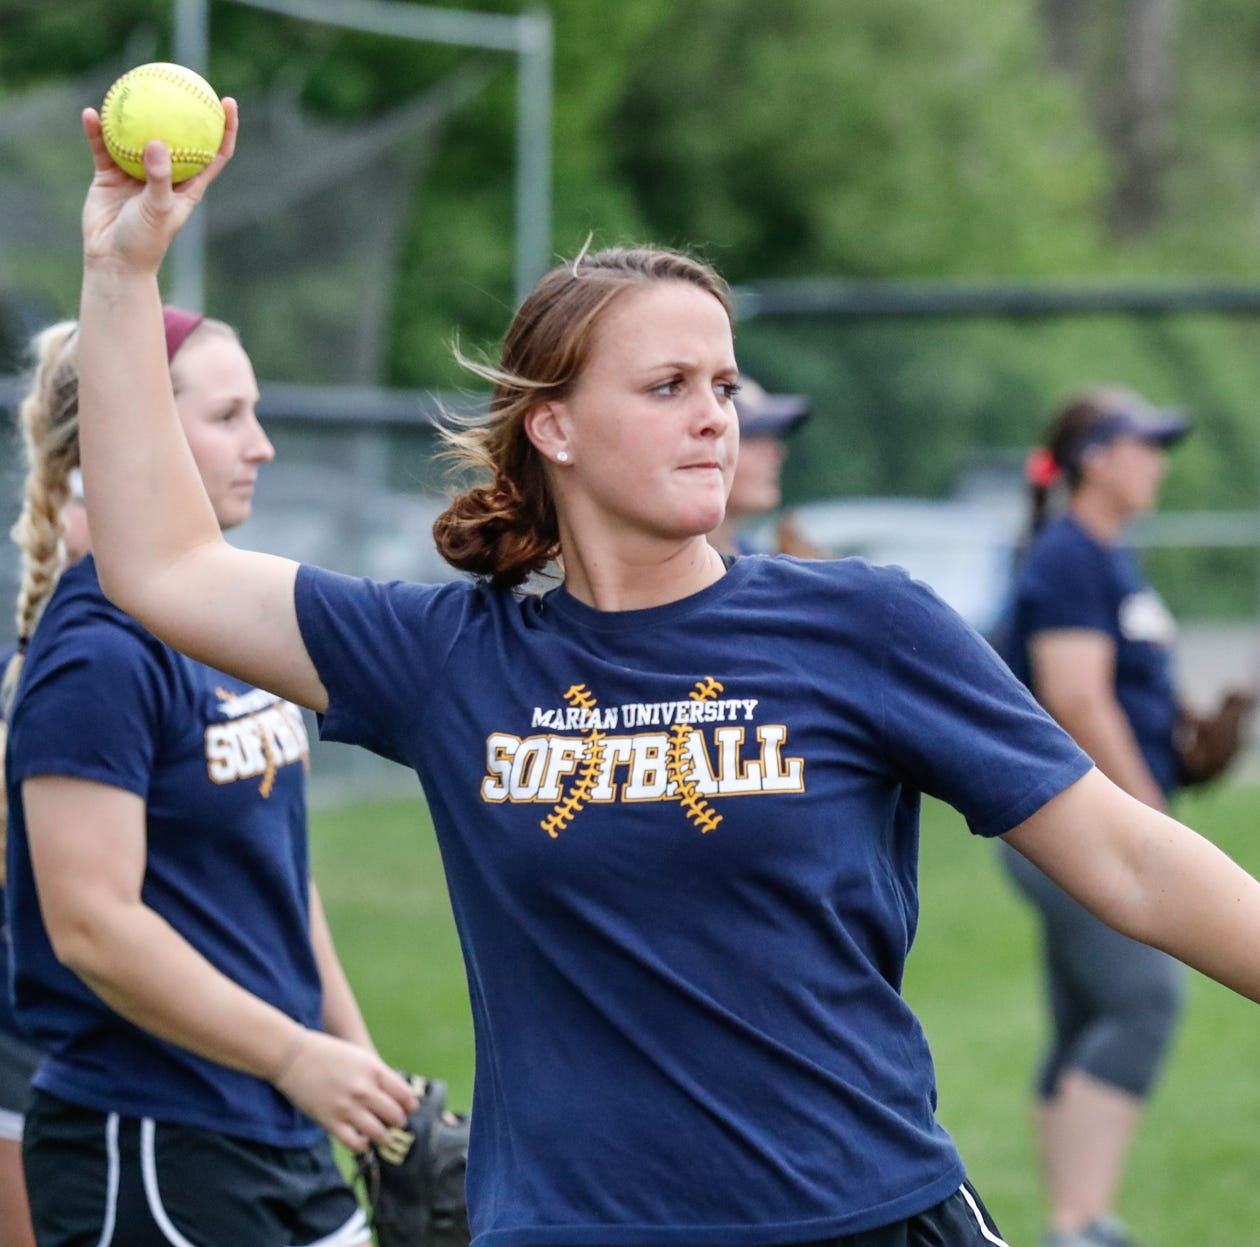 An unbelievable 49-0: Marian is only undefeated college softball team in U.S.